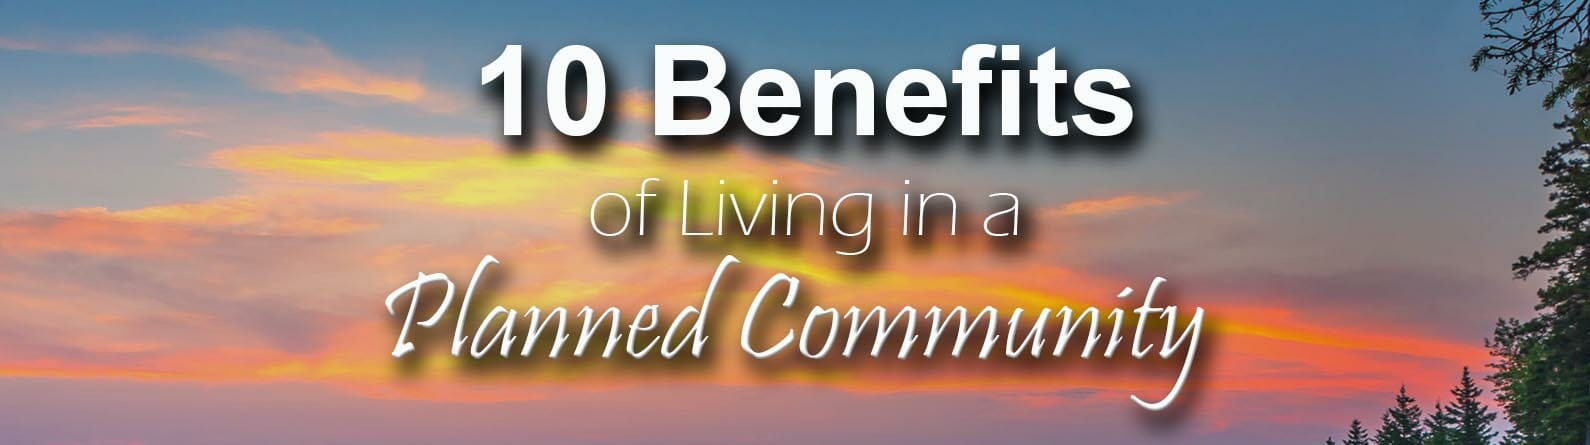 10 Benefits of Living in a Planned Community